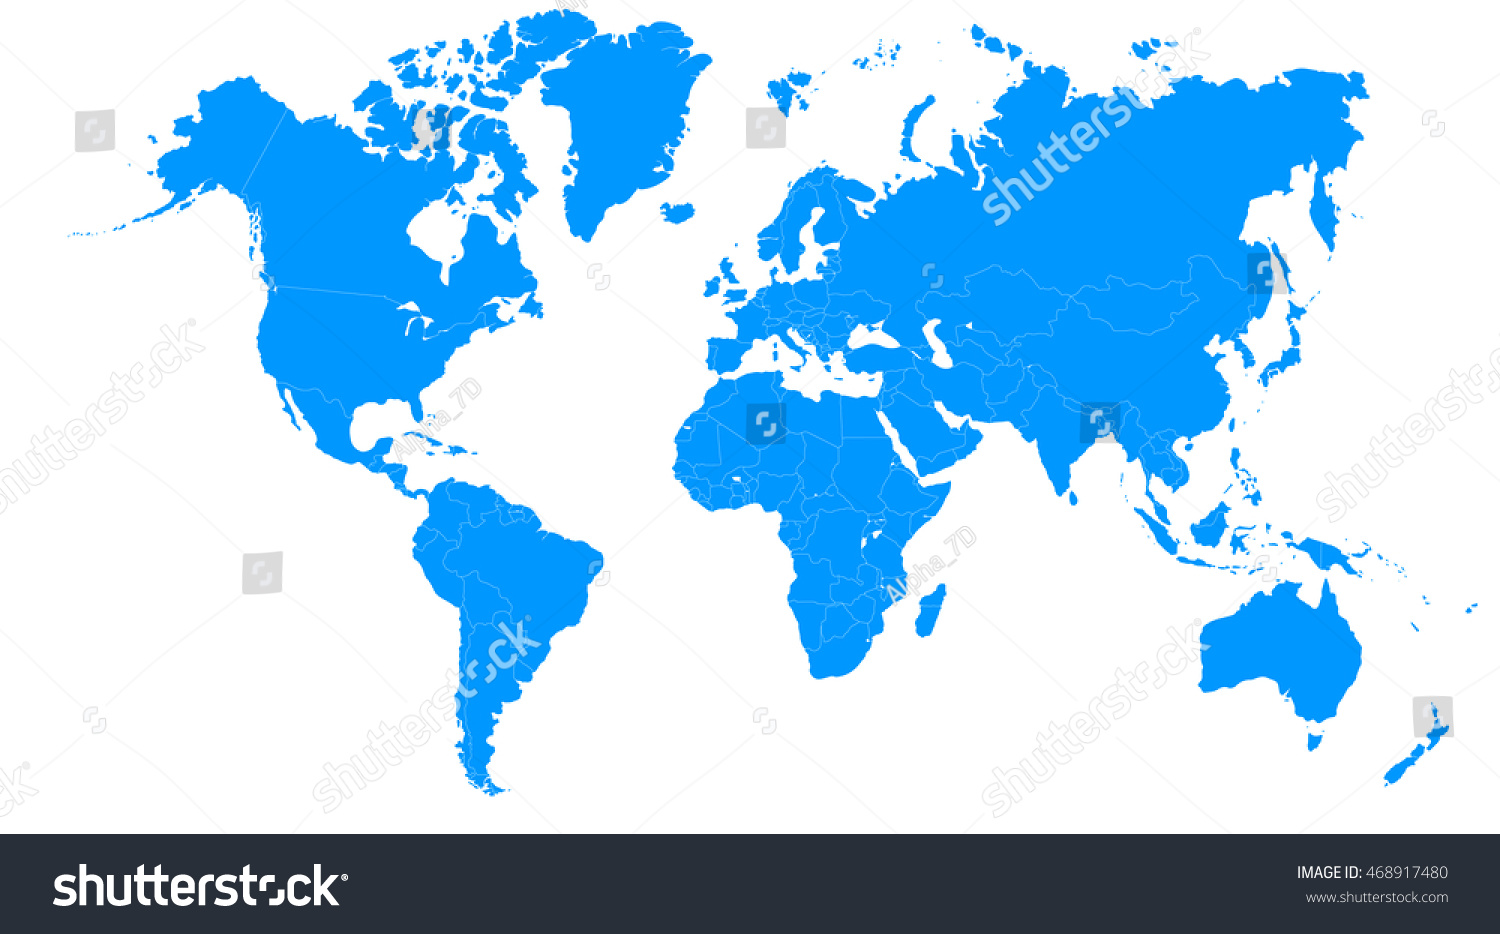 World map europe asia north america stock illustration 468917480 world map europe asia north america south america africa australia gumiabroncs Image collections